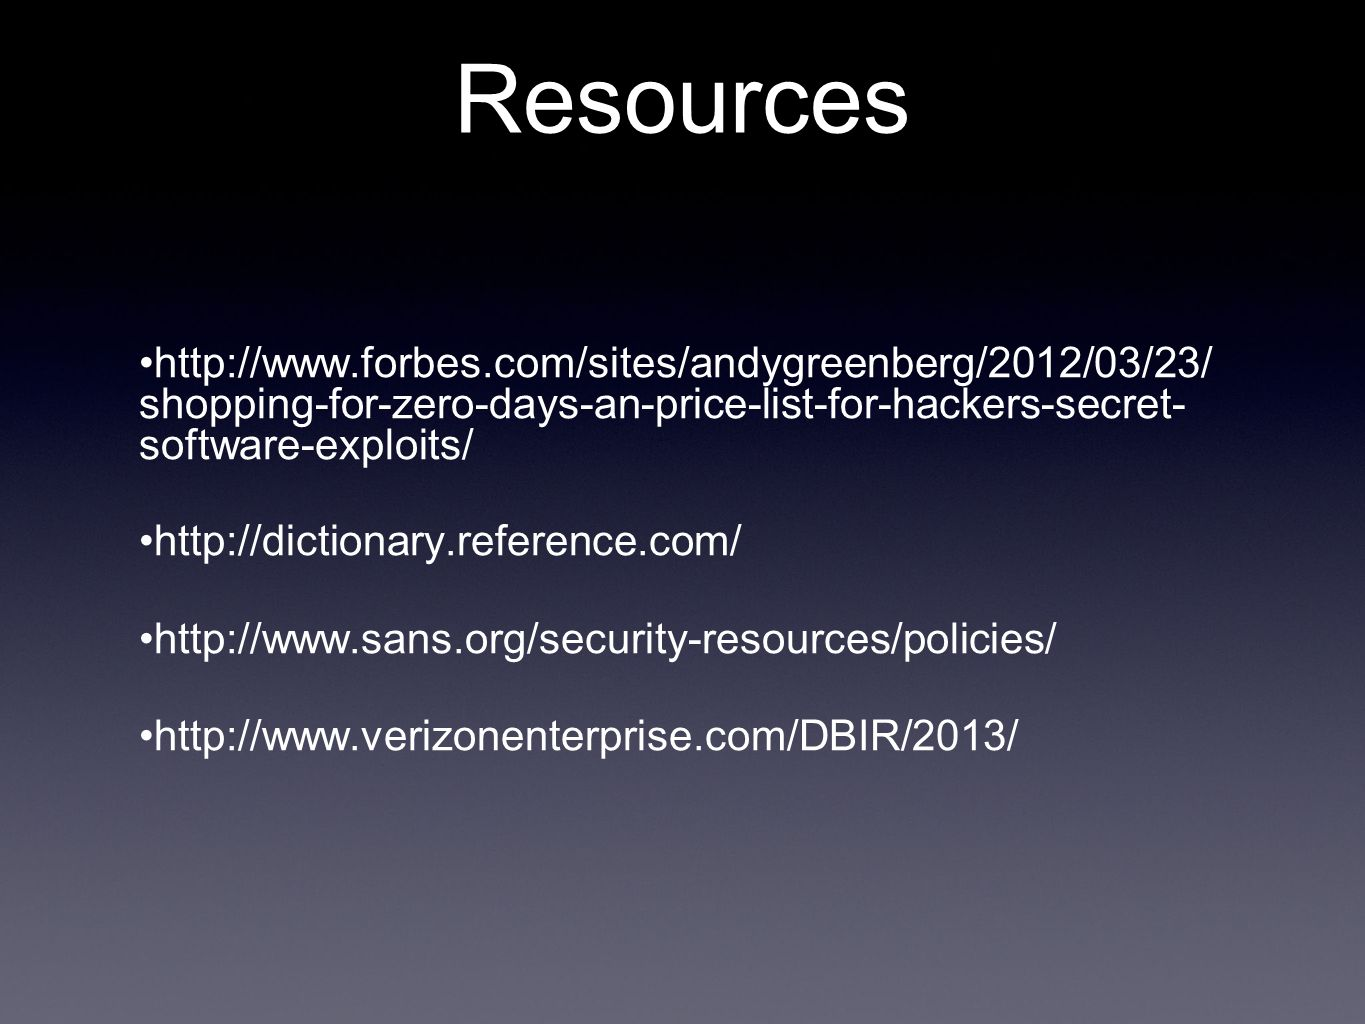 Resources http://www.forbes.com/sites/andygreenberg/2012/03/23/ shopping-for-zero-days-an-price-list-for-hackers-secret- software-exploits/ http://dictionary.reference.com/ http://www.sans.org/security-resources/policies/ http://www.verizonenterprise.com/DBIR/2013/